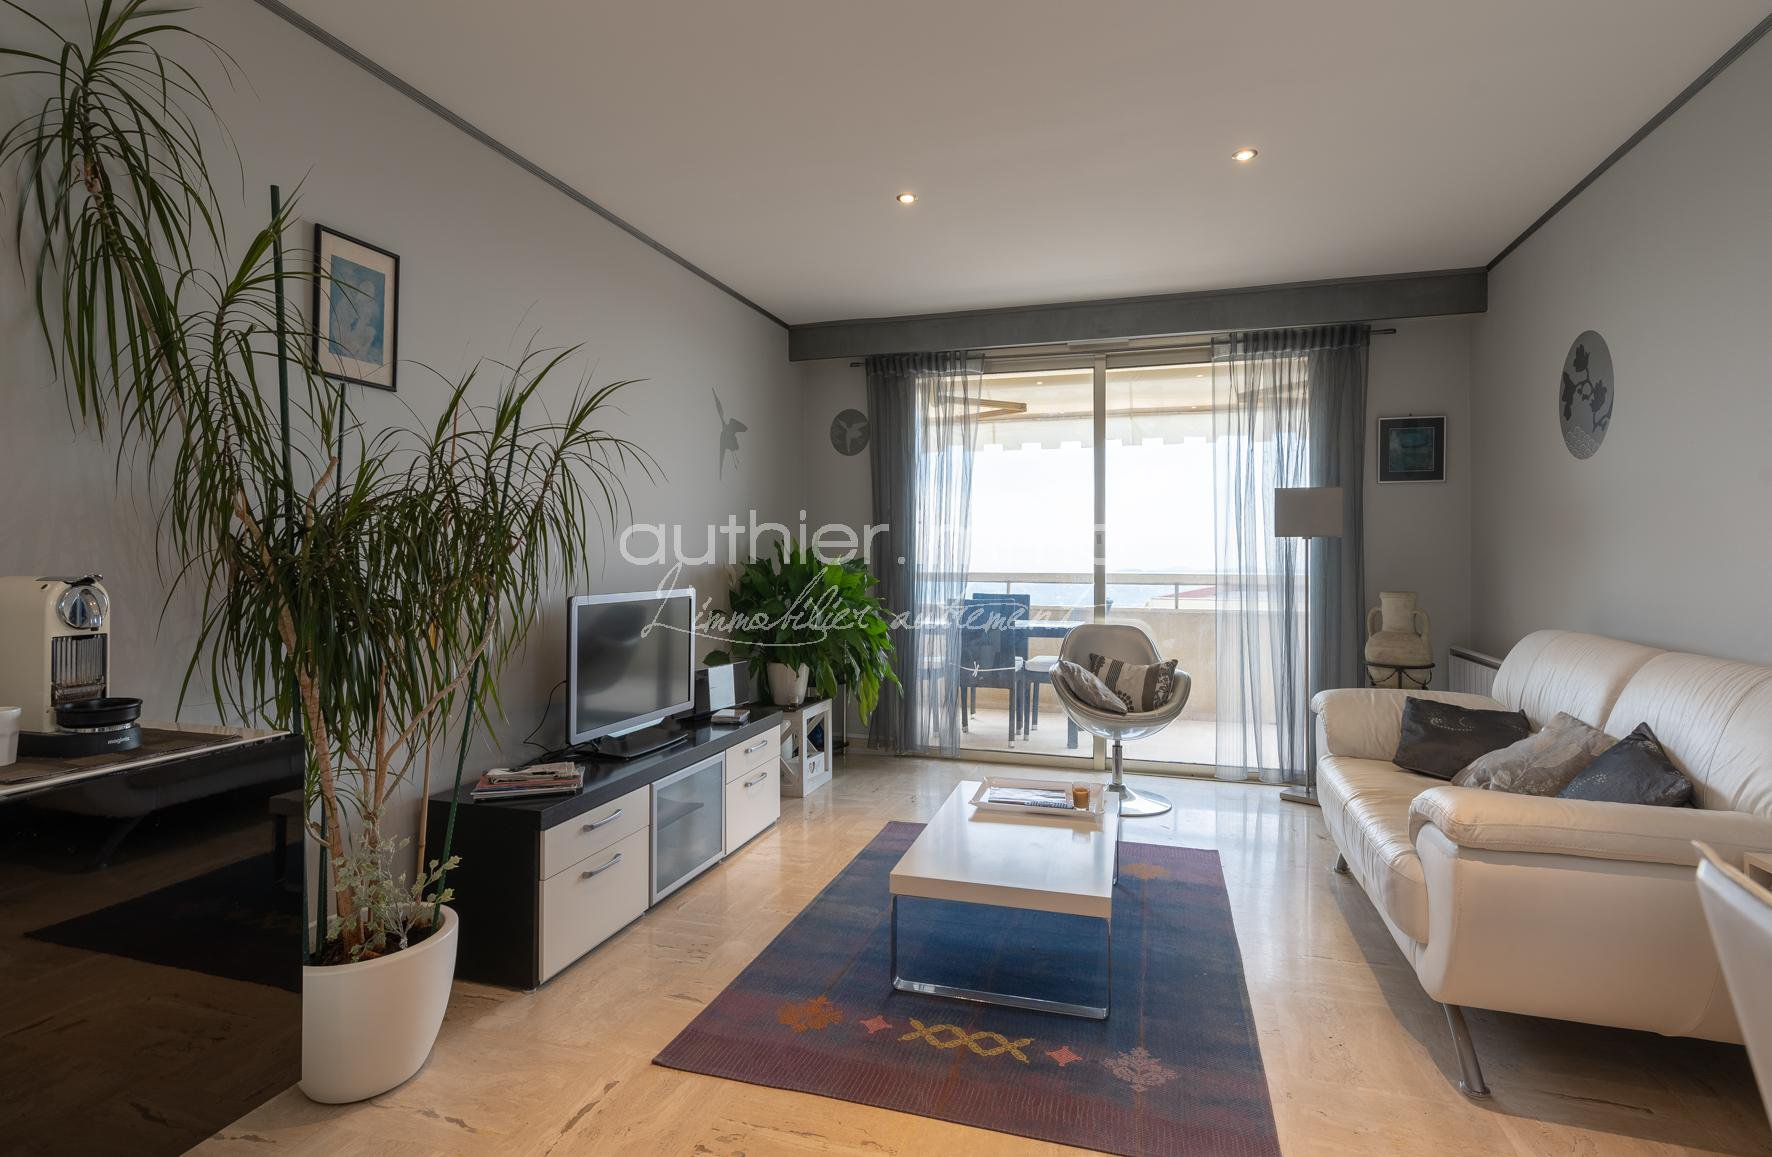 Vente Appartement Traversant Vue Mer